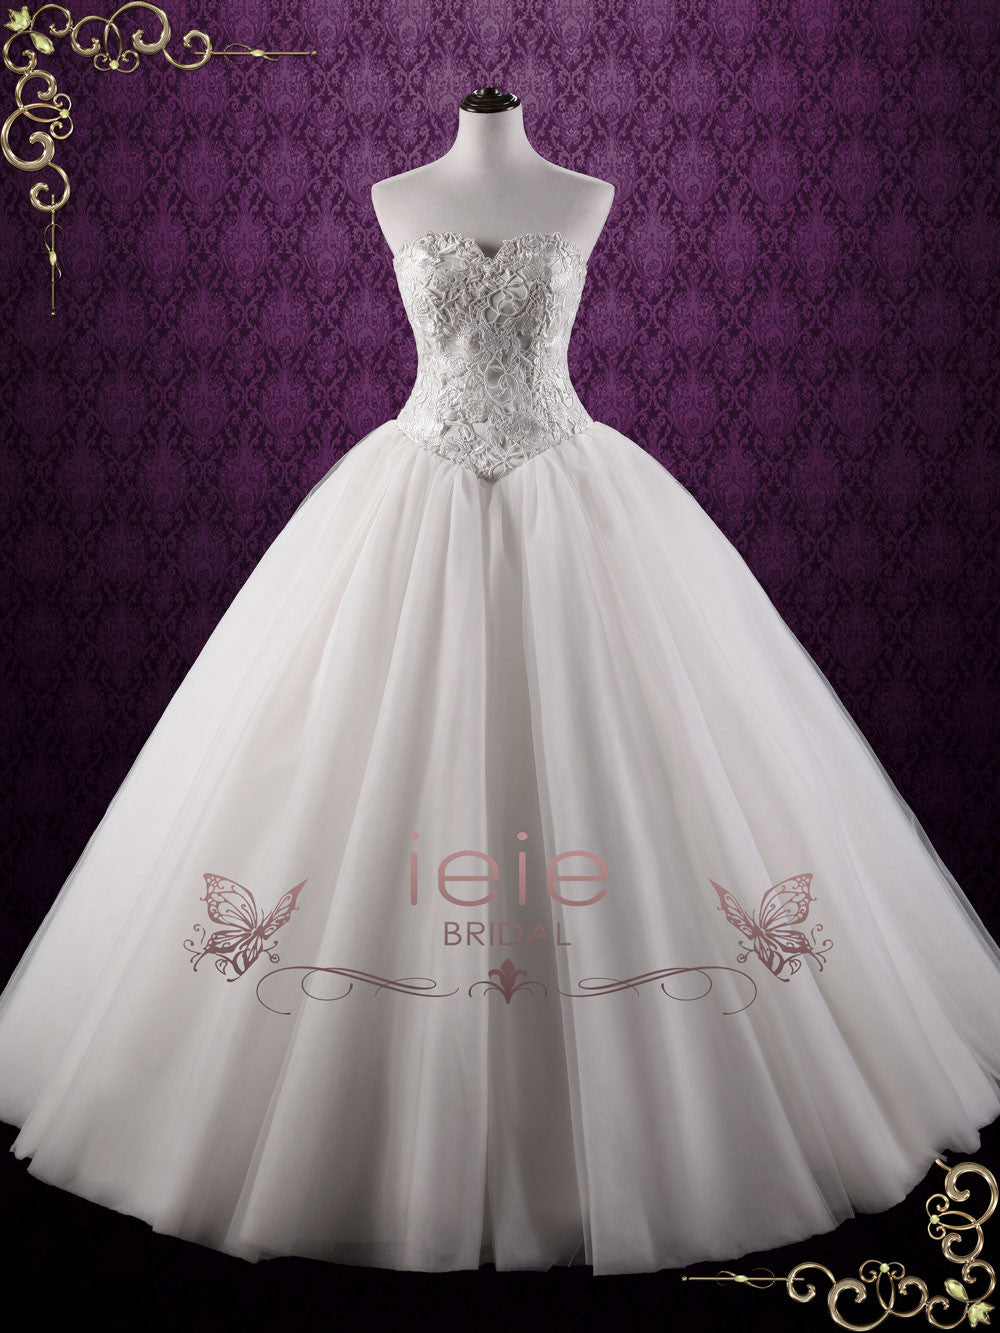 Fairy Tale Lace Ball Gown Wedding Dress Bella Ieie Bridal